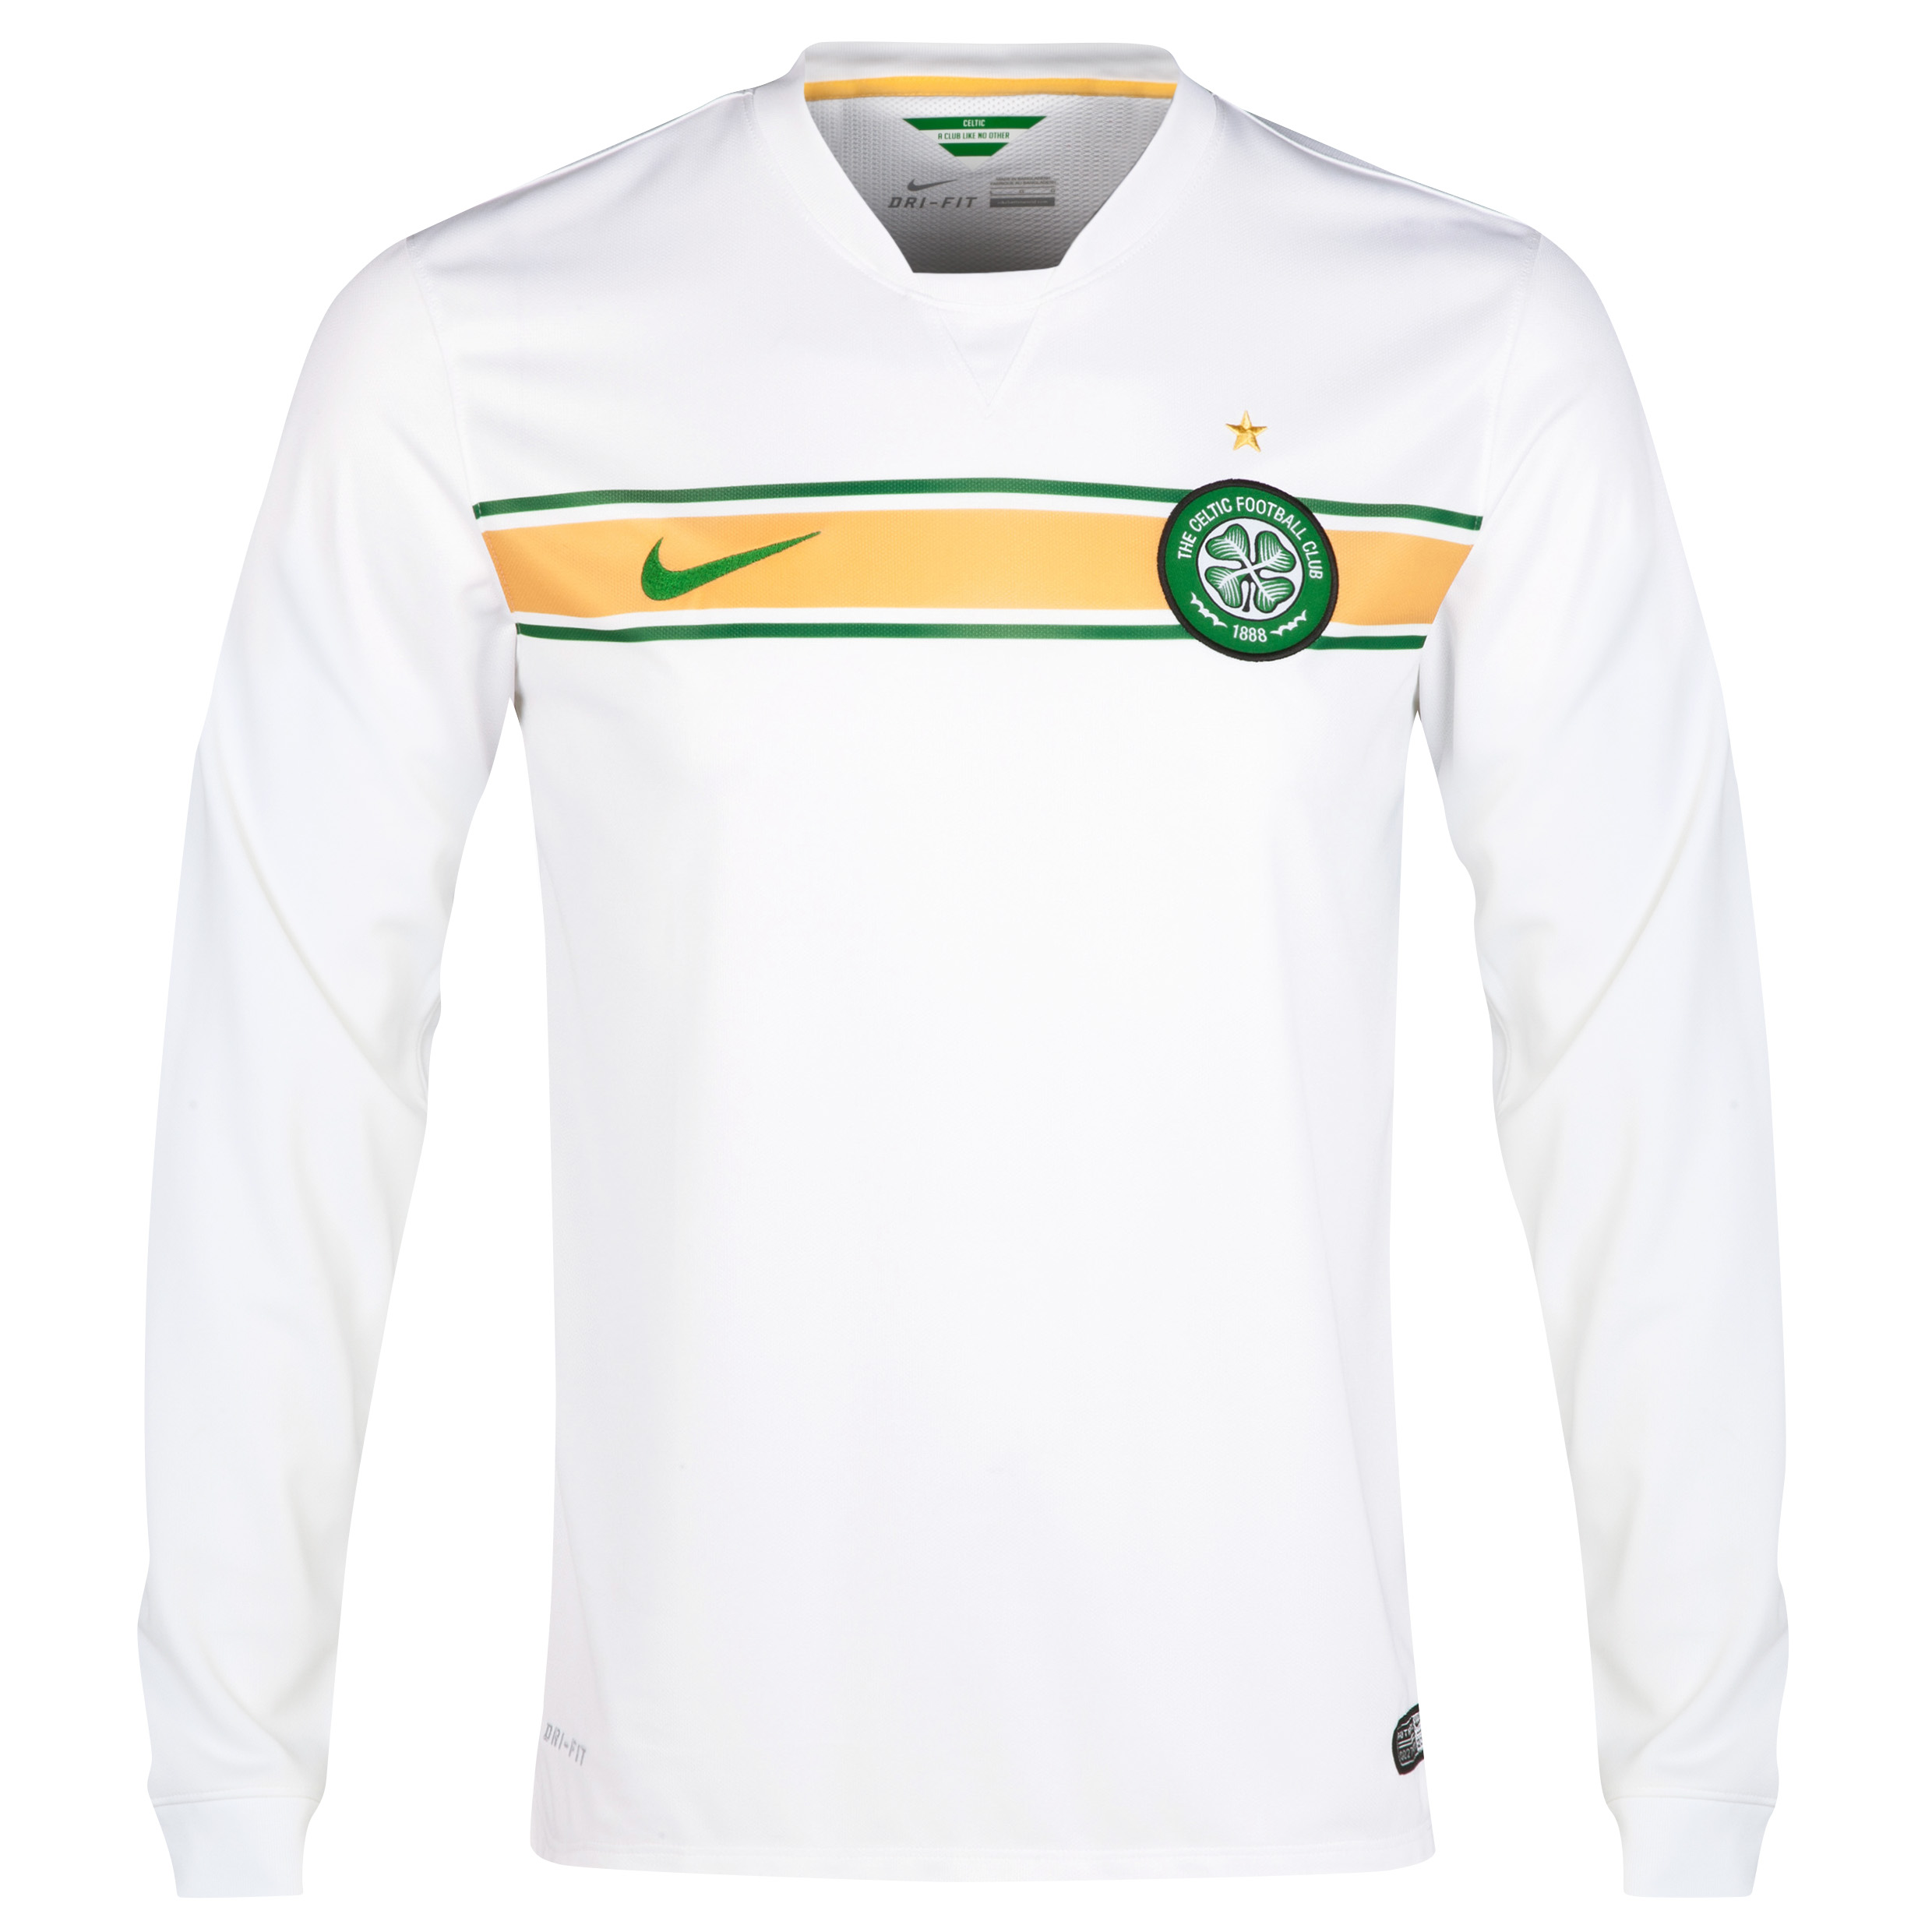 Celtic 3rd Shirt 2014/15 - Long Sleeved - Unsponsored White